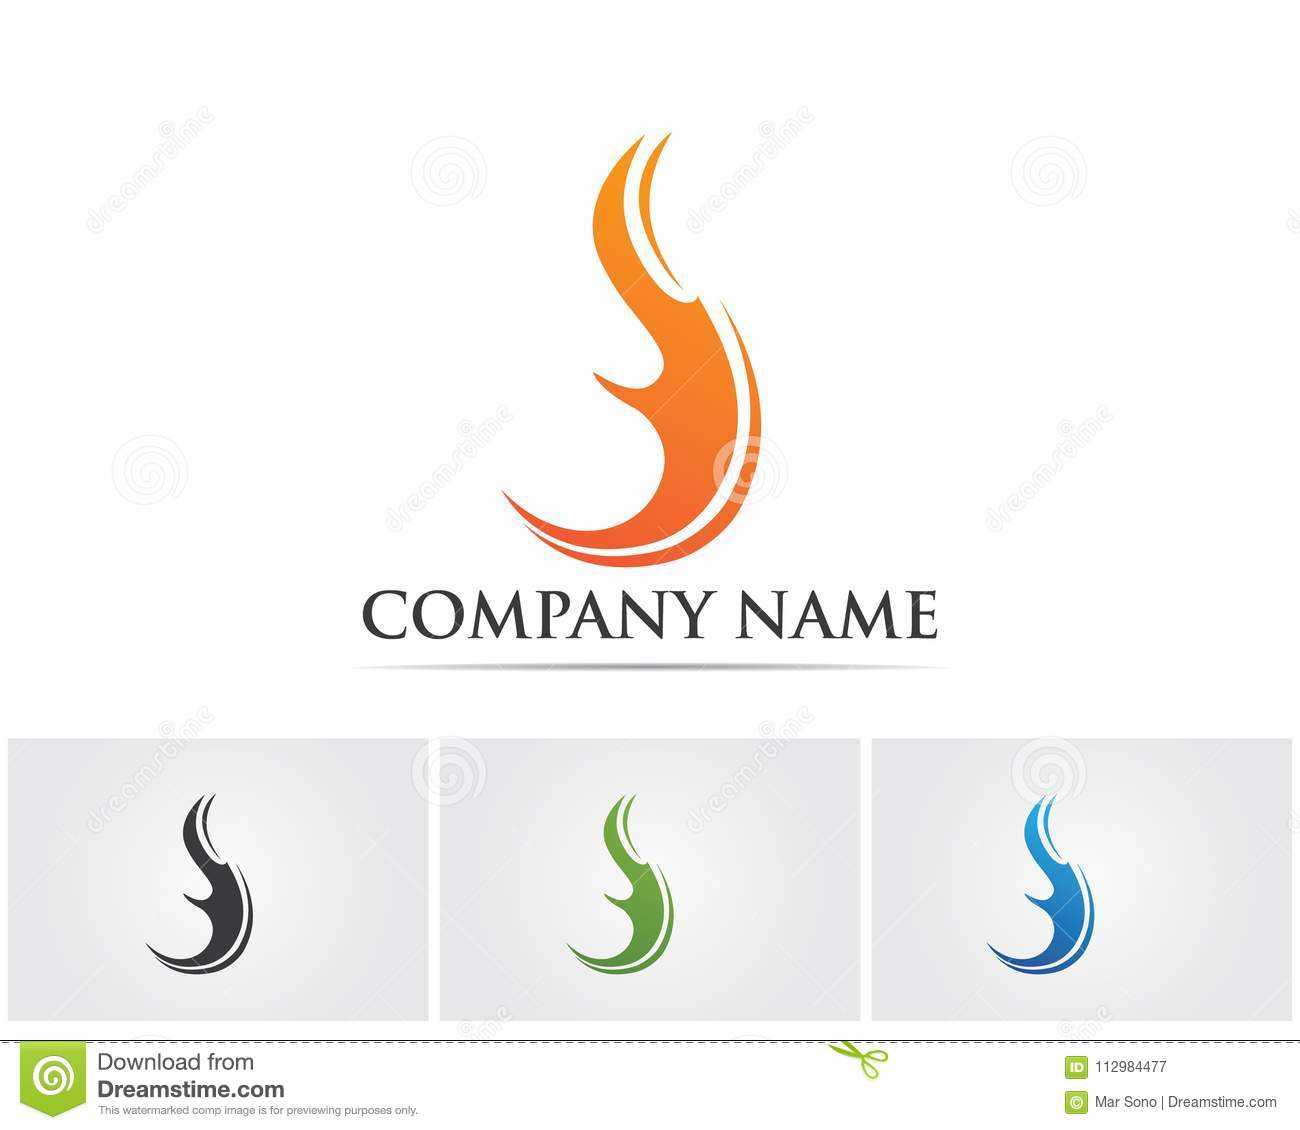 Fire nature logo and symbols icons template